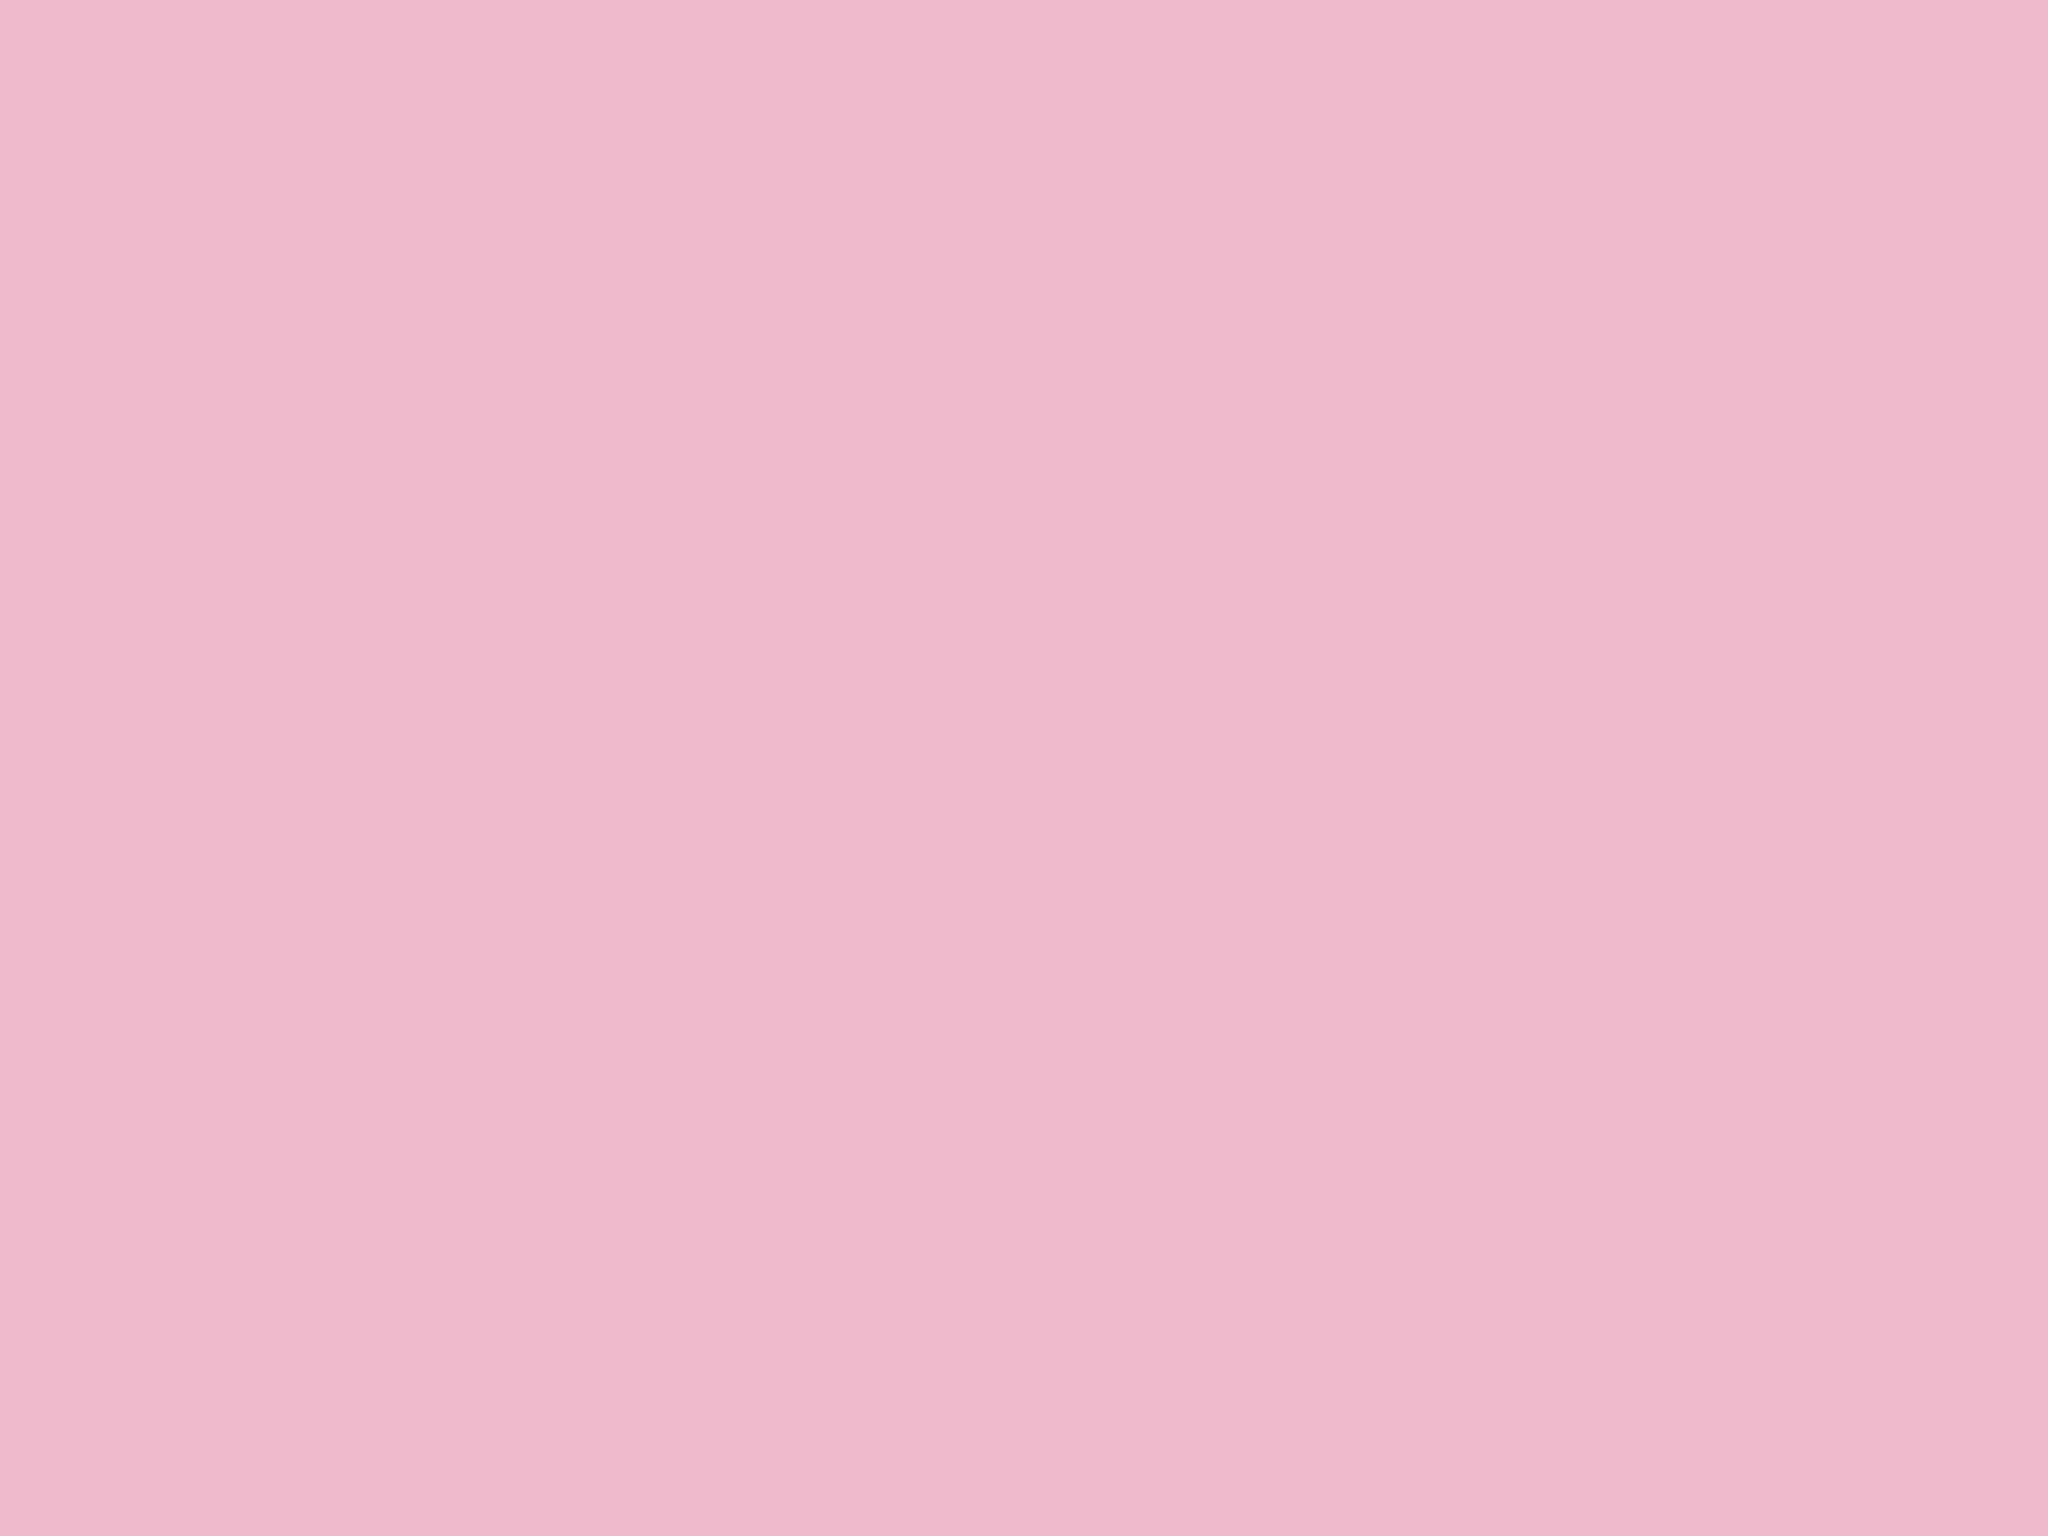 2048x1536 Cameo Pink Solid Color Background